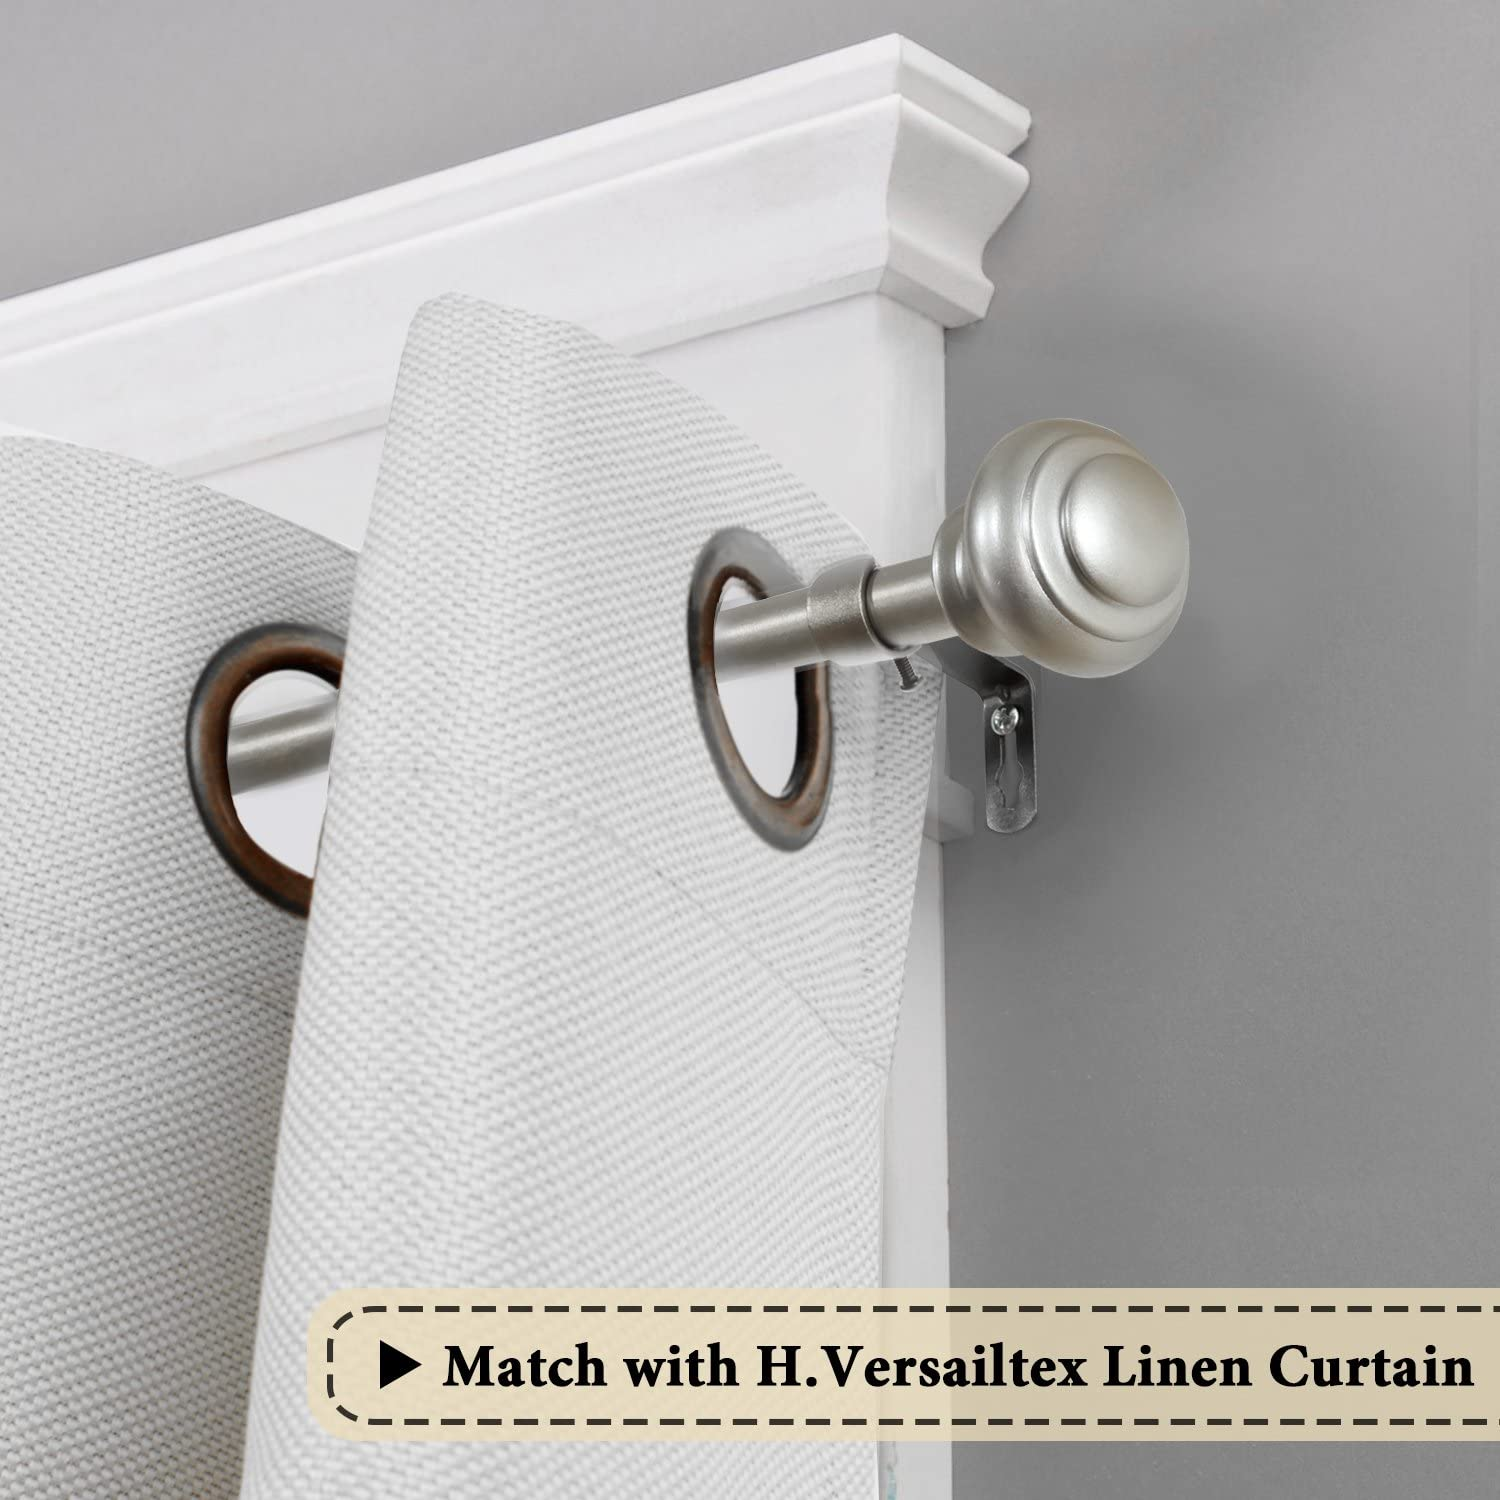 H.VERSAILTEX Elegant Window Treatment Single Curtain Rod Set,3/4 - Inch Diamter,48 - Inch to 84 - Inch, Nickel (Metal Rod and Hardware with Resin Finials): Home & Kitchen